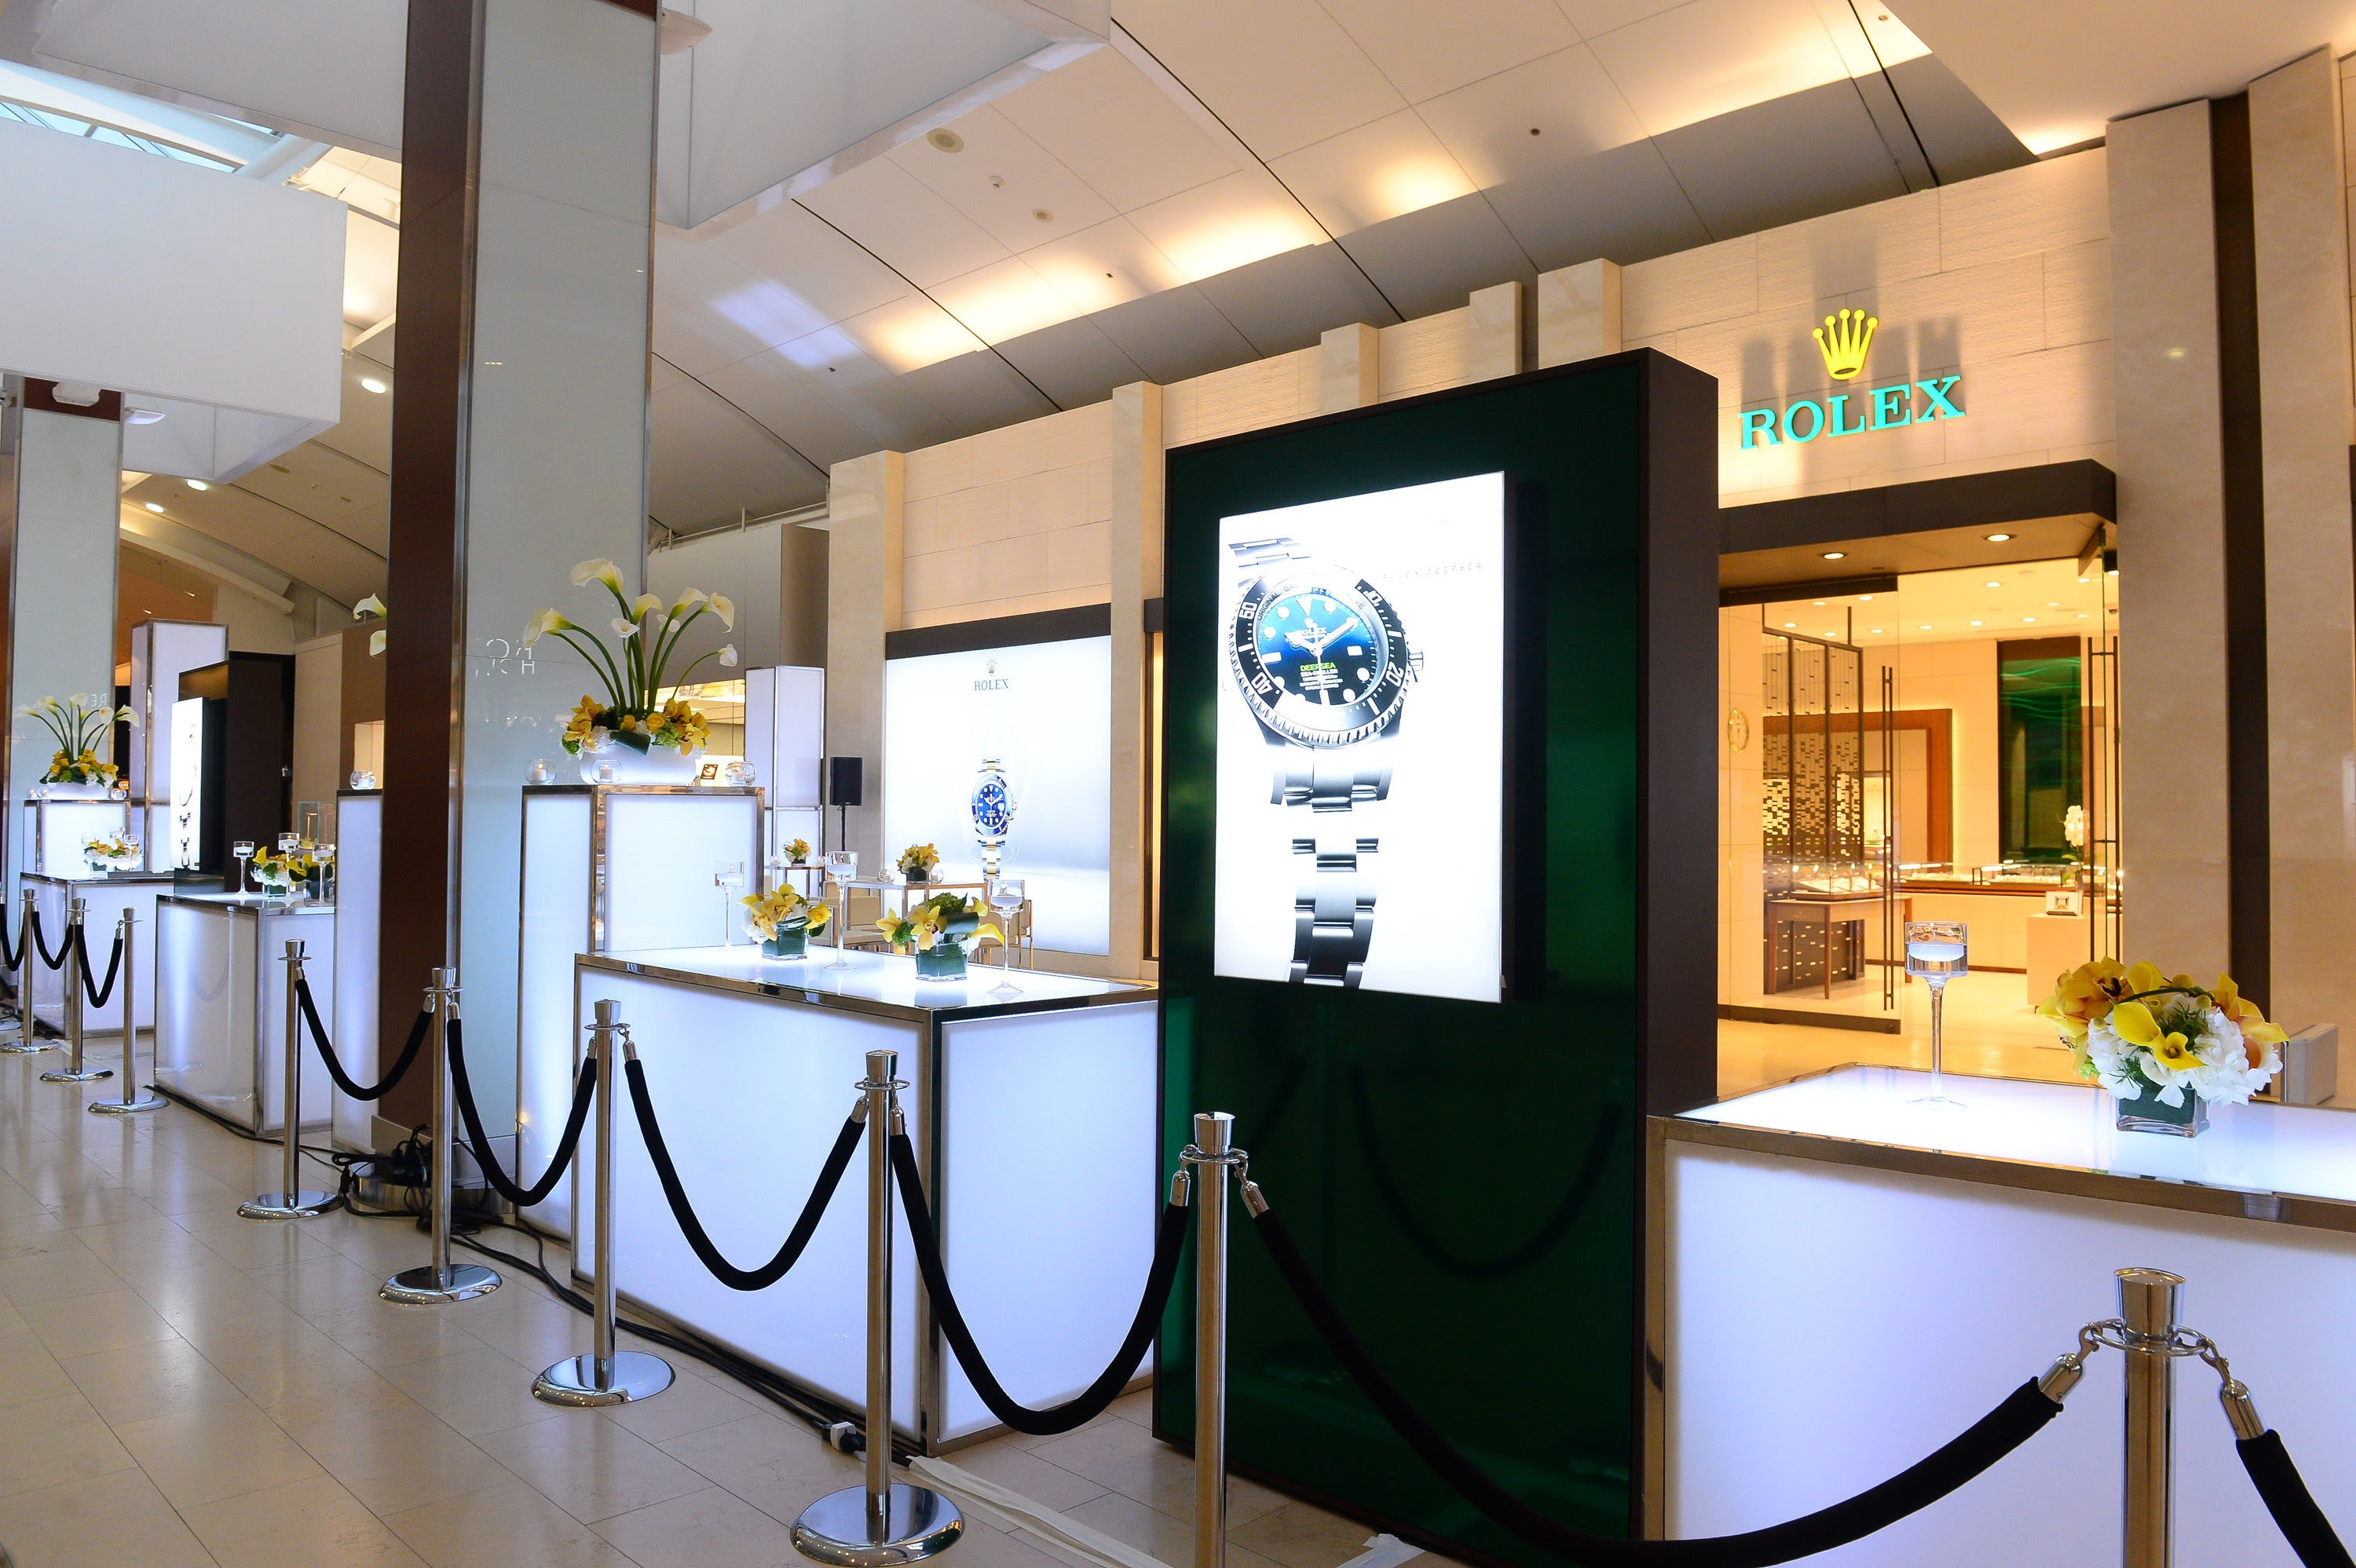 Rolex Boutique by Raffi Jewellers at Square One Shopping Centre | SWAGGER Magazine